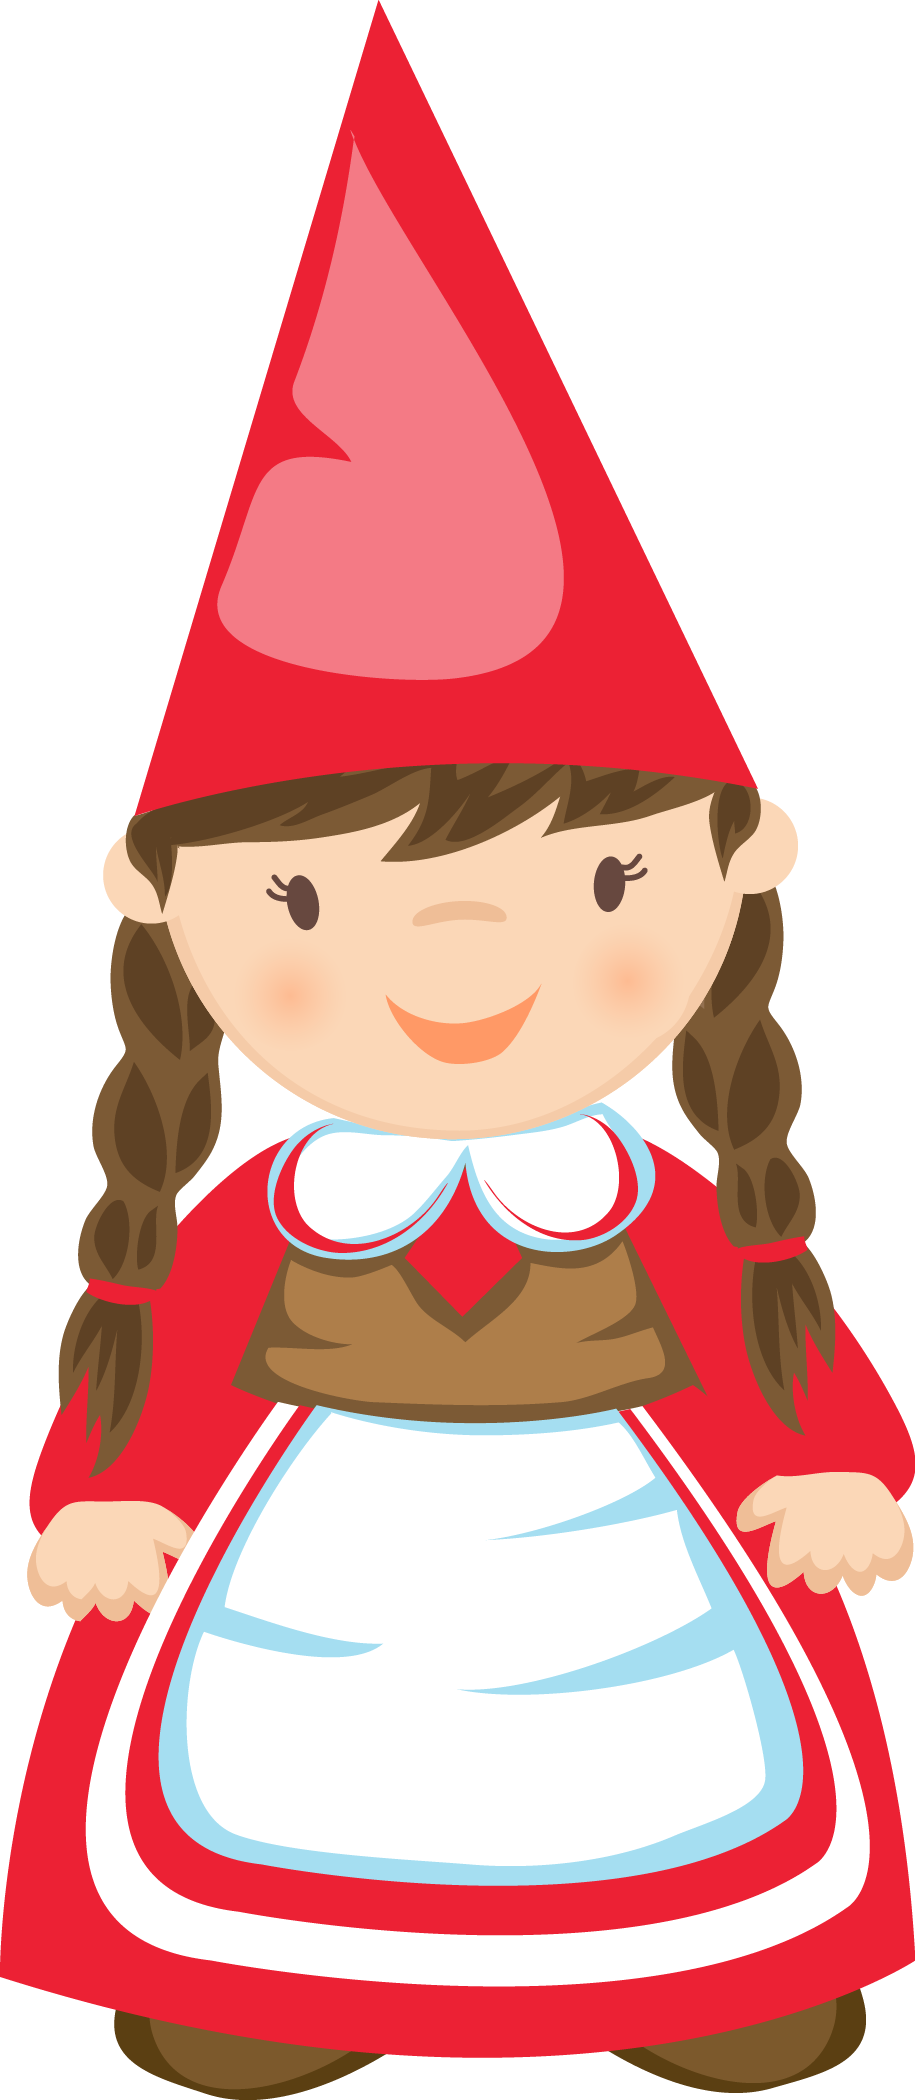 Gnome house clipart clip royalty free download GIRL GNOME *   CLIP ART - GNOMES - CLIPART   Pinterest   Gnomes ... clip royalty free download